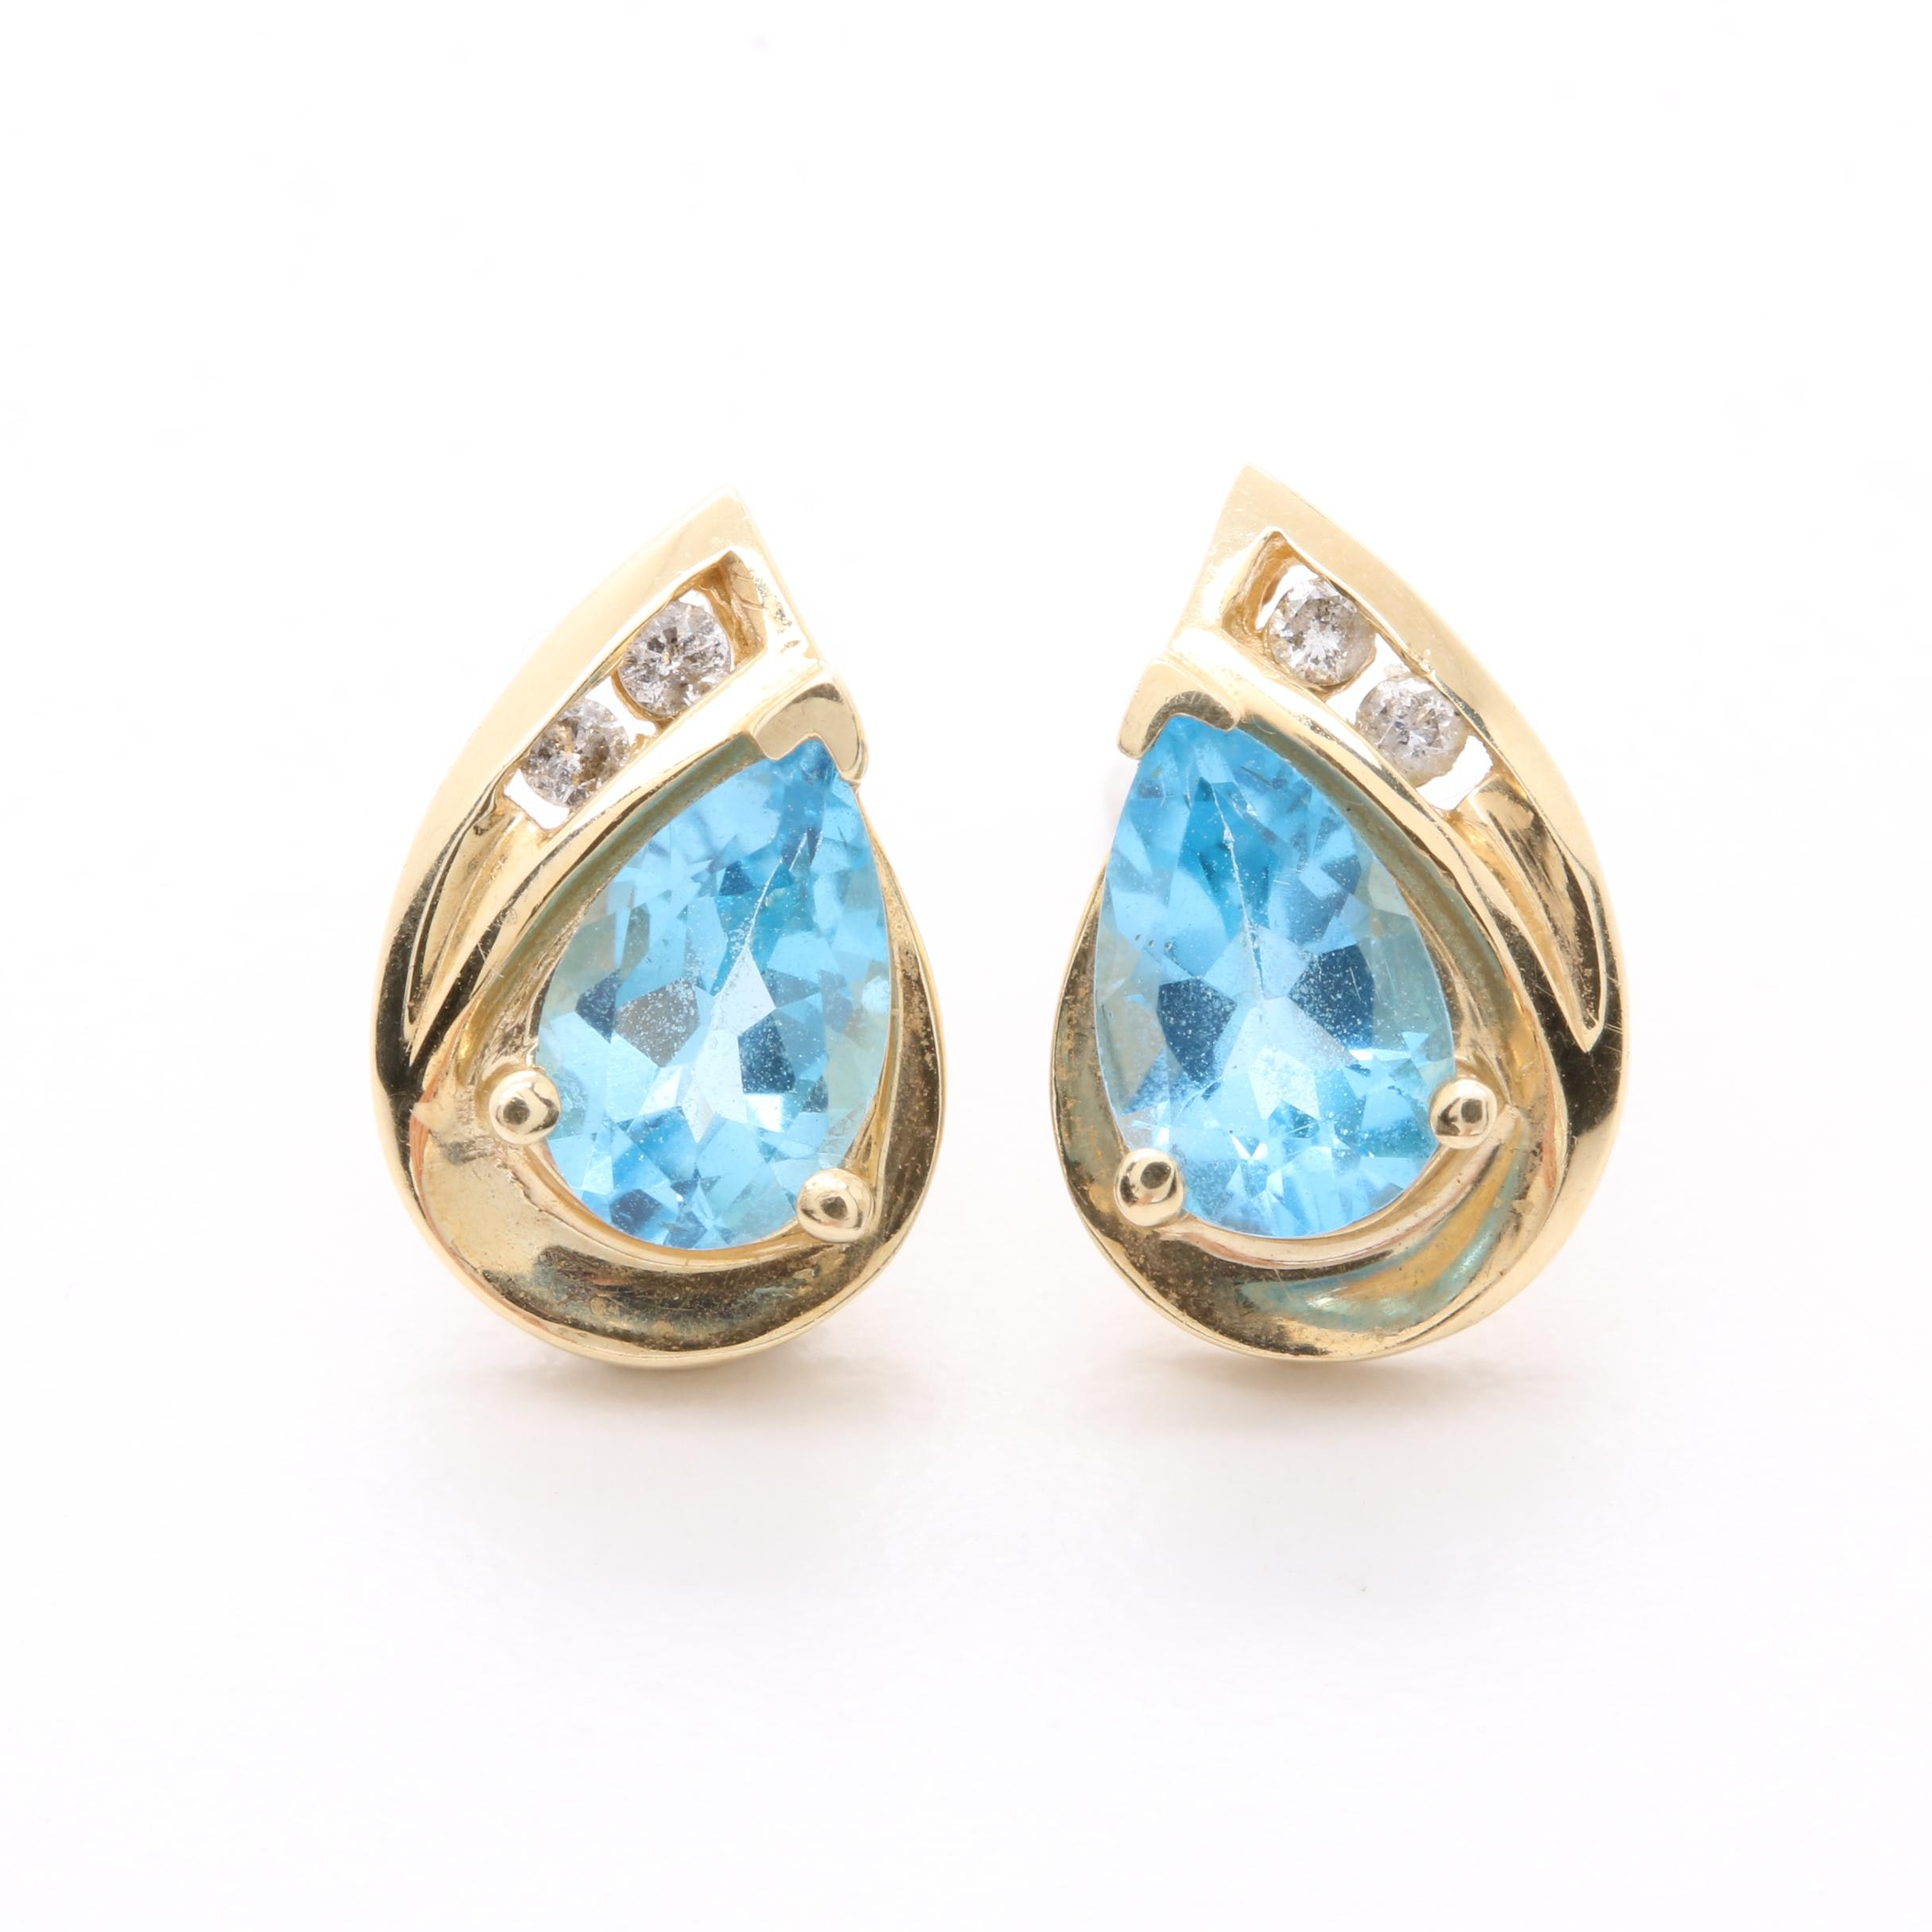 10K Yellow Gold Blue Topaz and Diamond Earrings